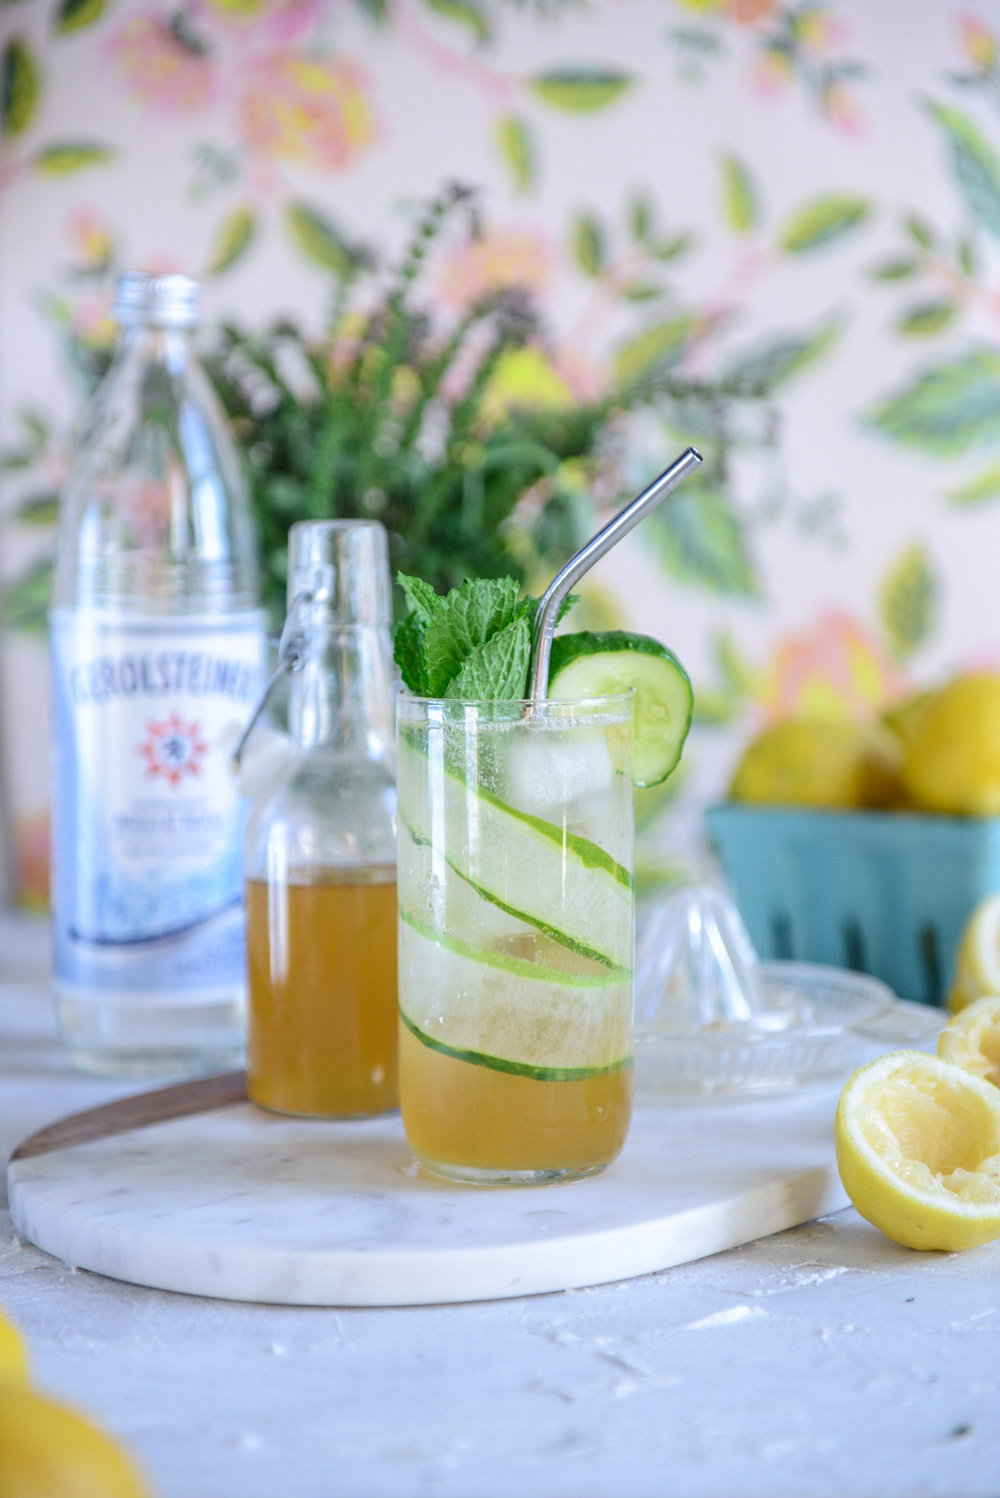 Sparkling Cucumber Mint Lemonade (A Healthy Soda Alternative) + A Cocktail // www.WithTheGrains.com